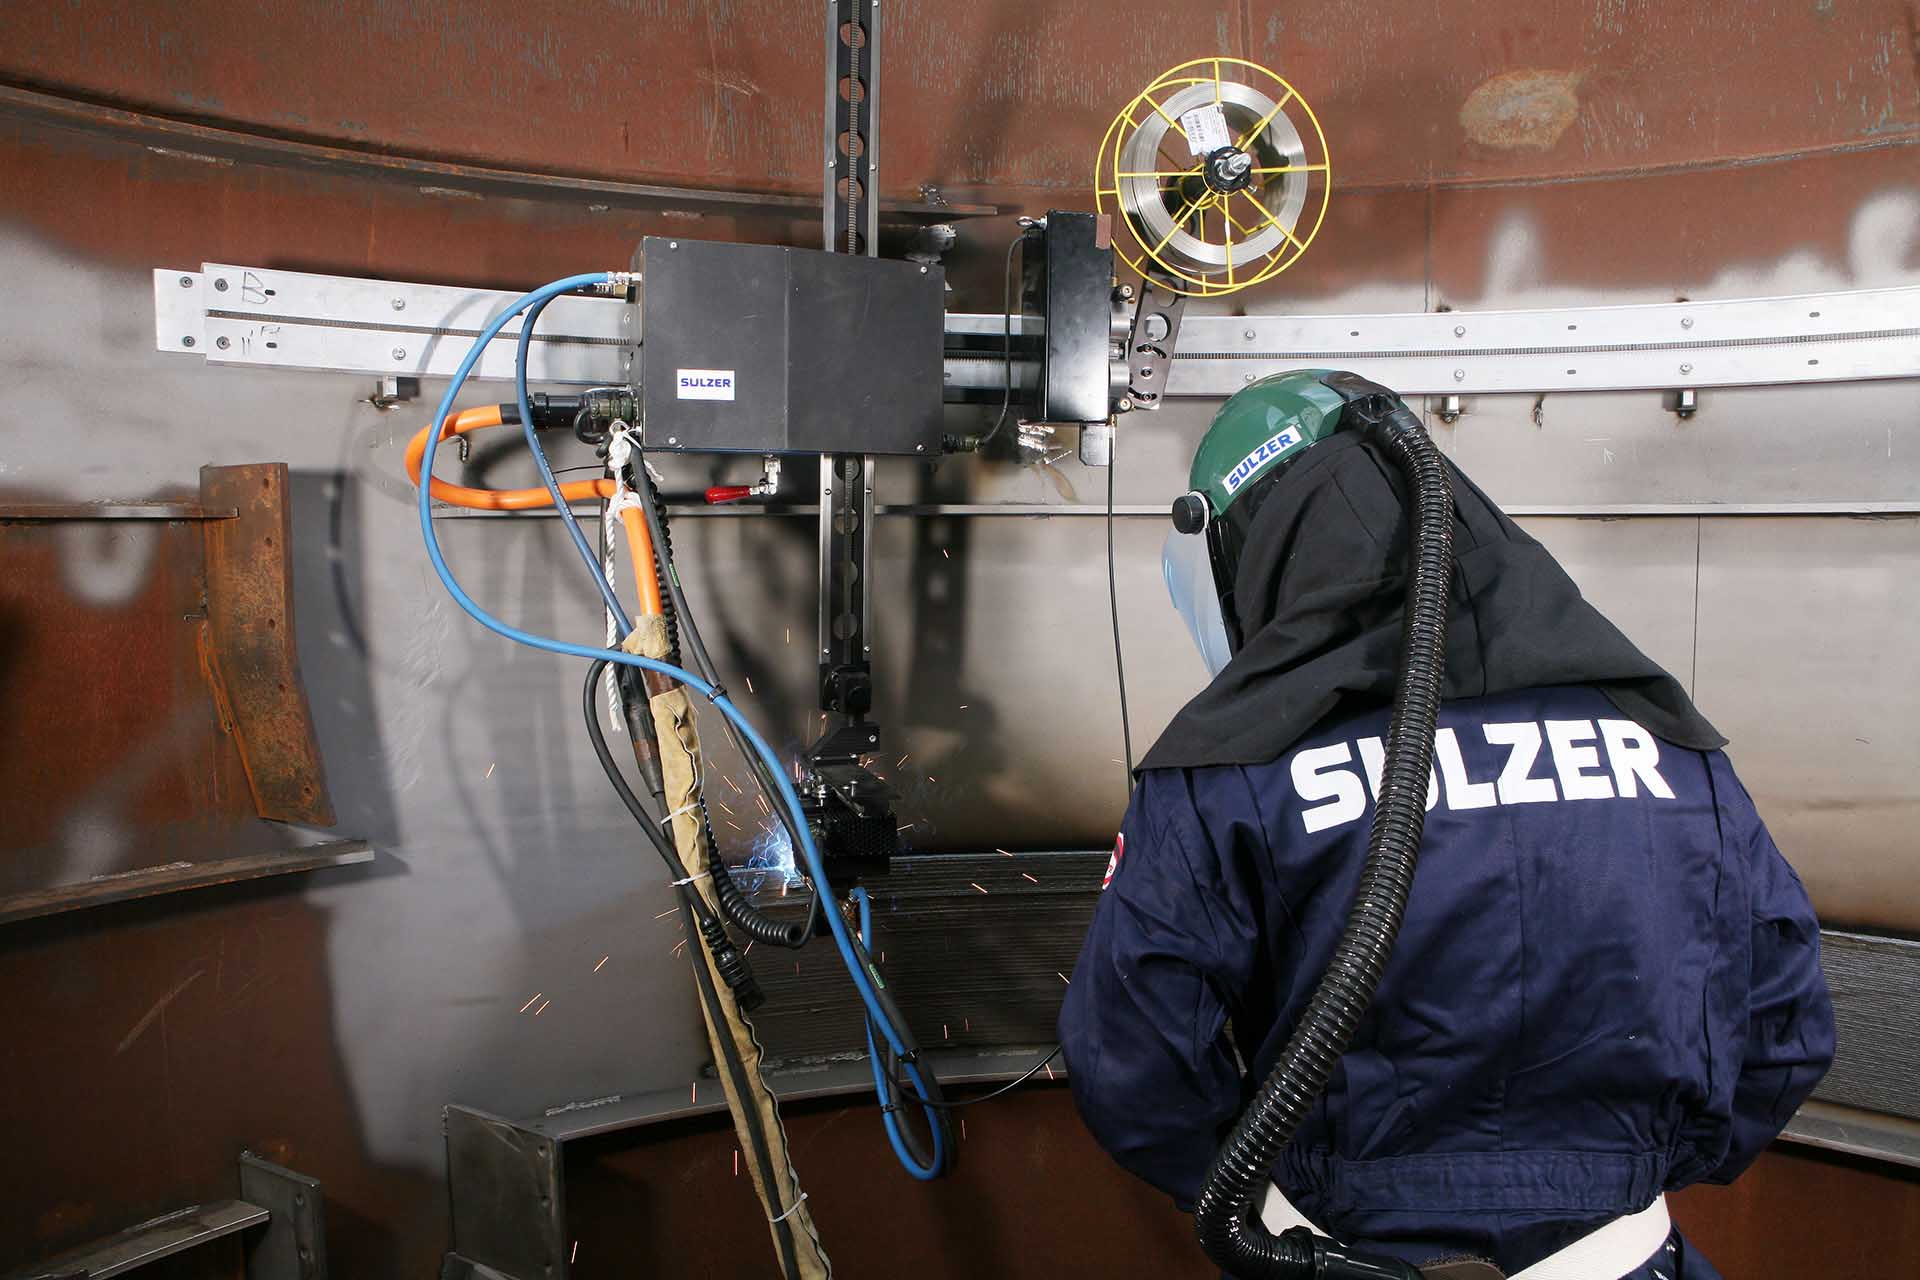 Sulzer employee at welding installation